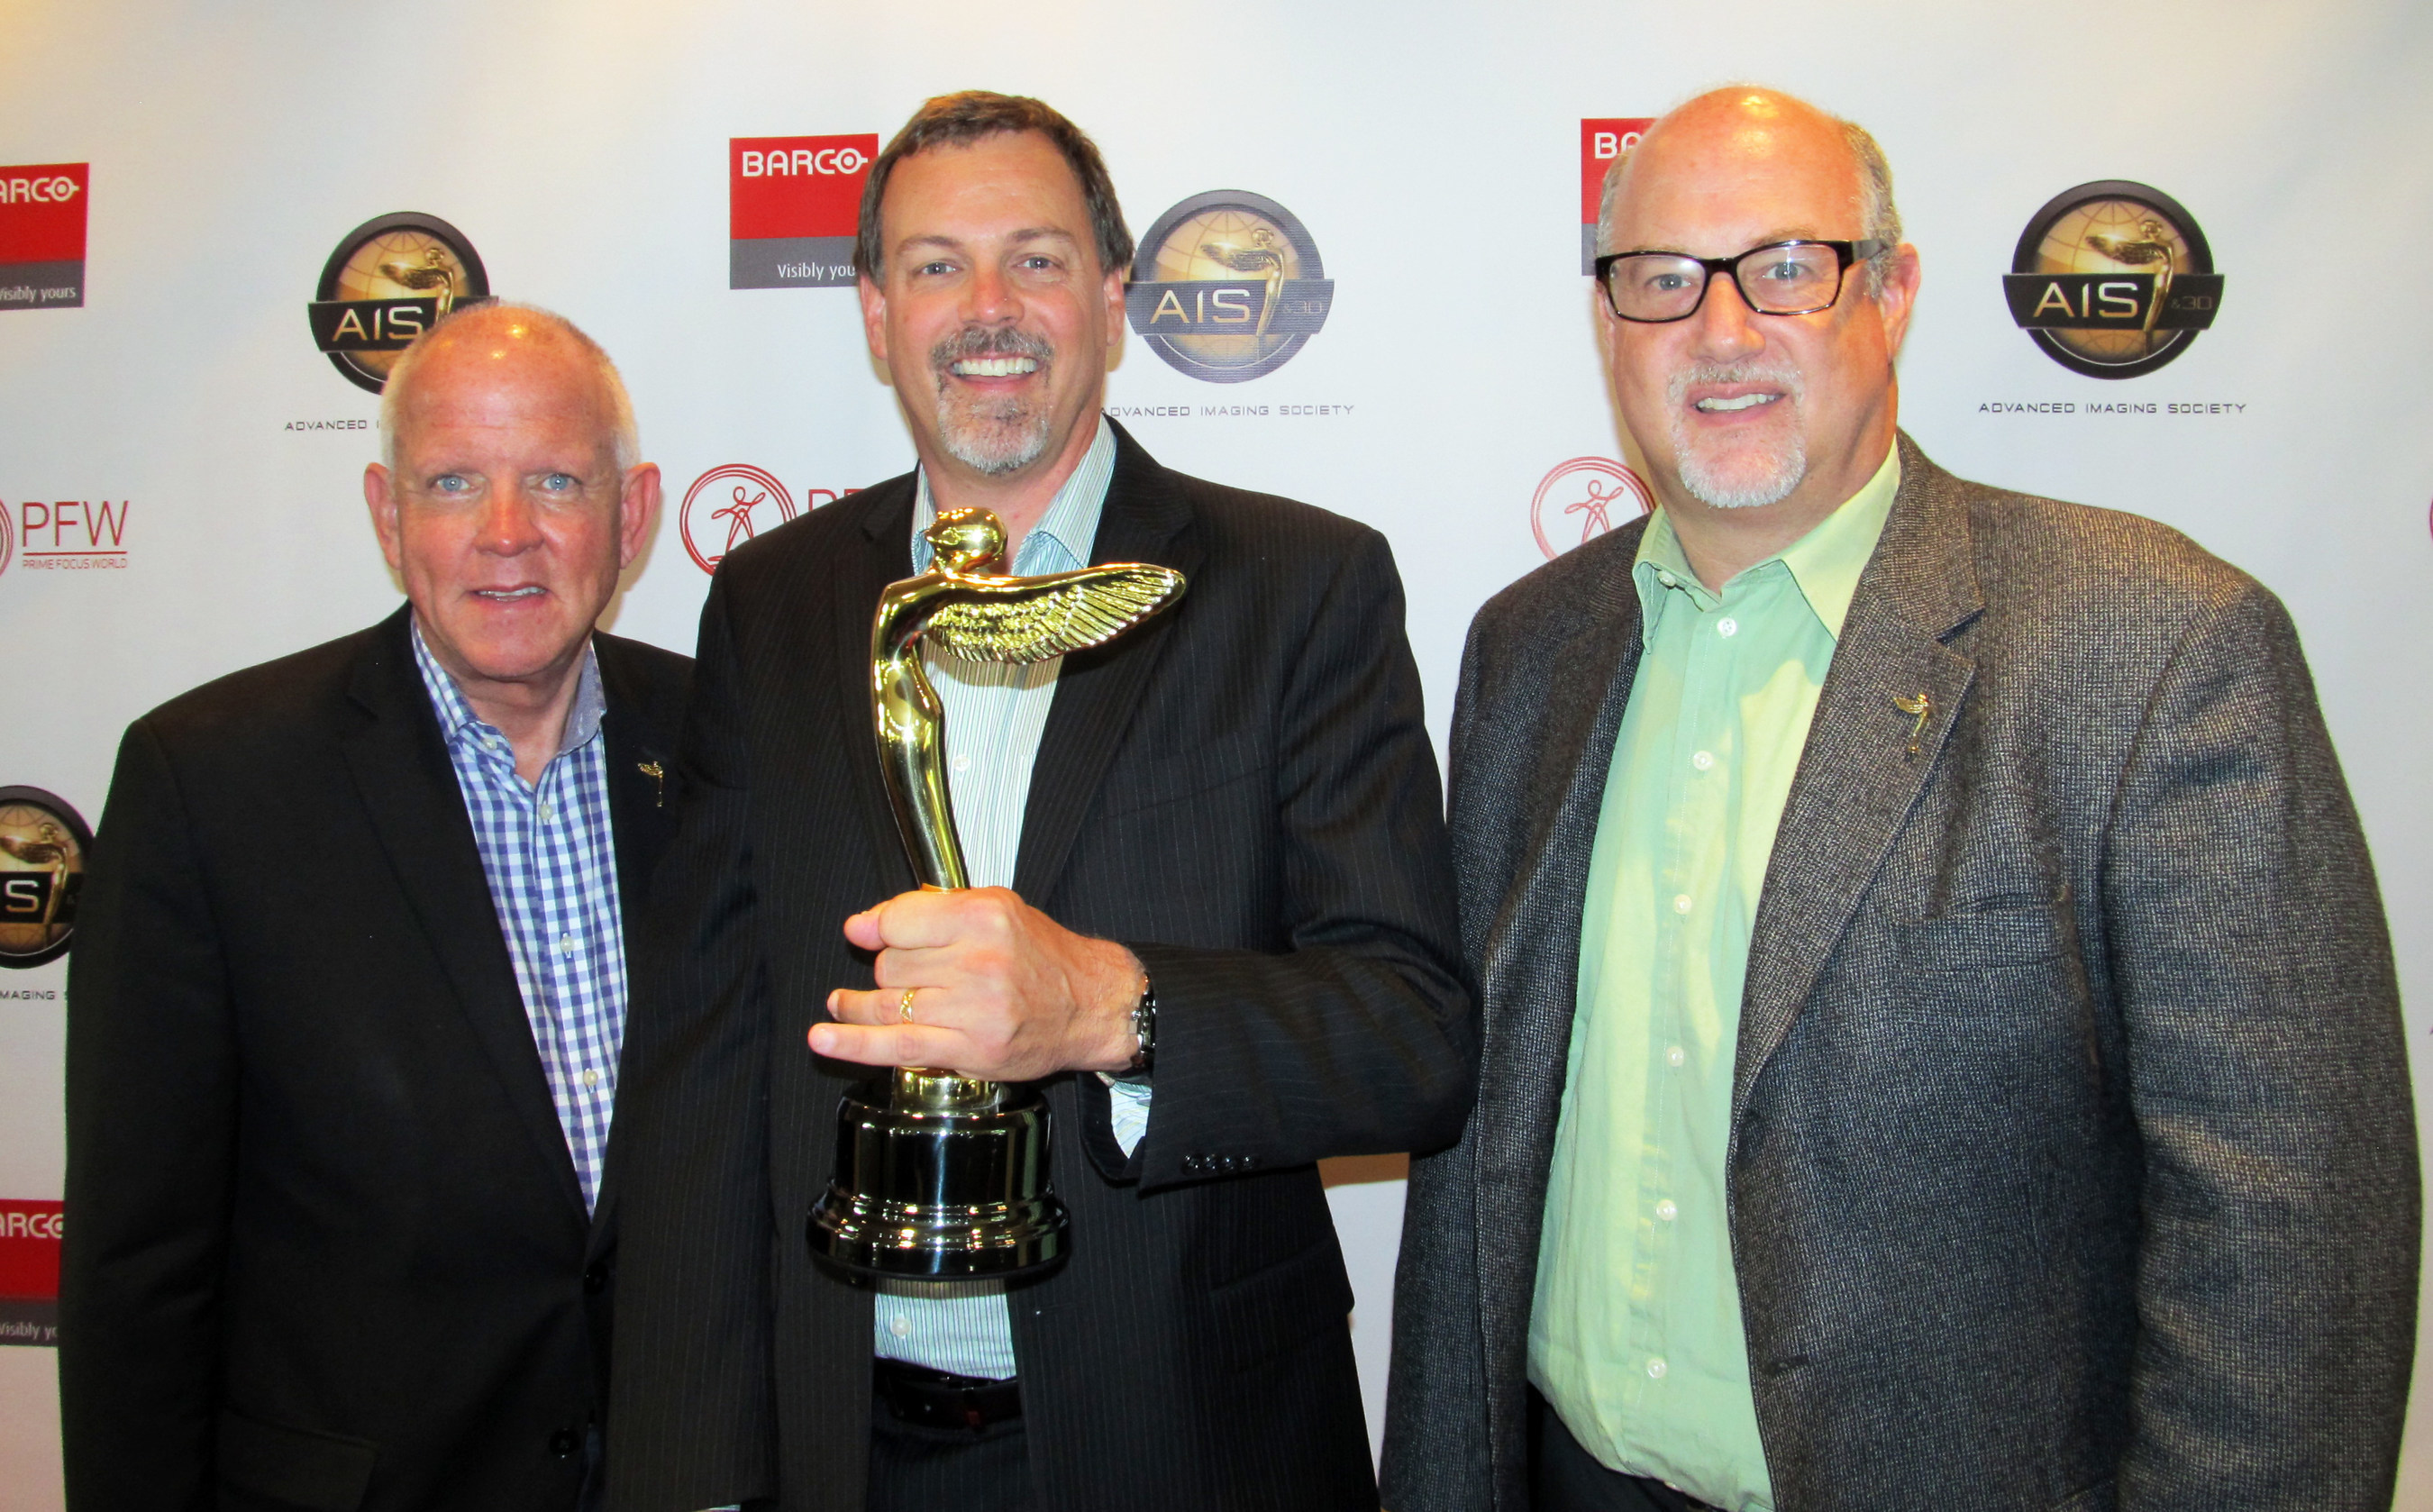 Stream TV Business Development VP Bud Robertson (center) with Advanced Imaging Society President Jim Chabin (left) and AIS Chairman Mike DeValue (right) receives Lumiere Award for the company's breakthrough Ultra-D glasses-free 3D technology at Paramount Studios in Hollywood. Source: www.movebeyond3D.com